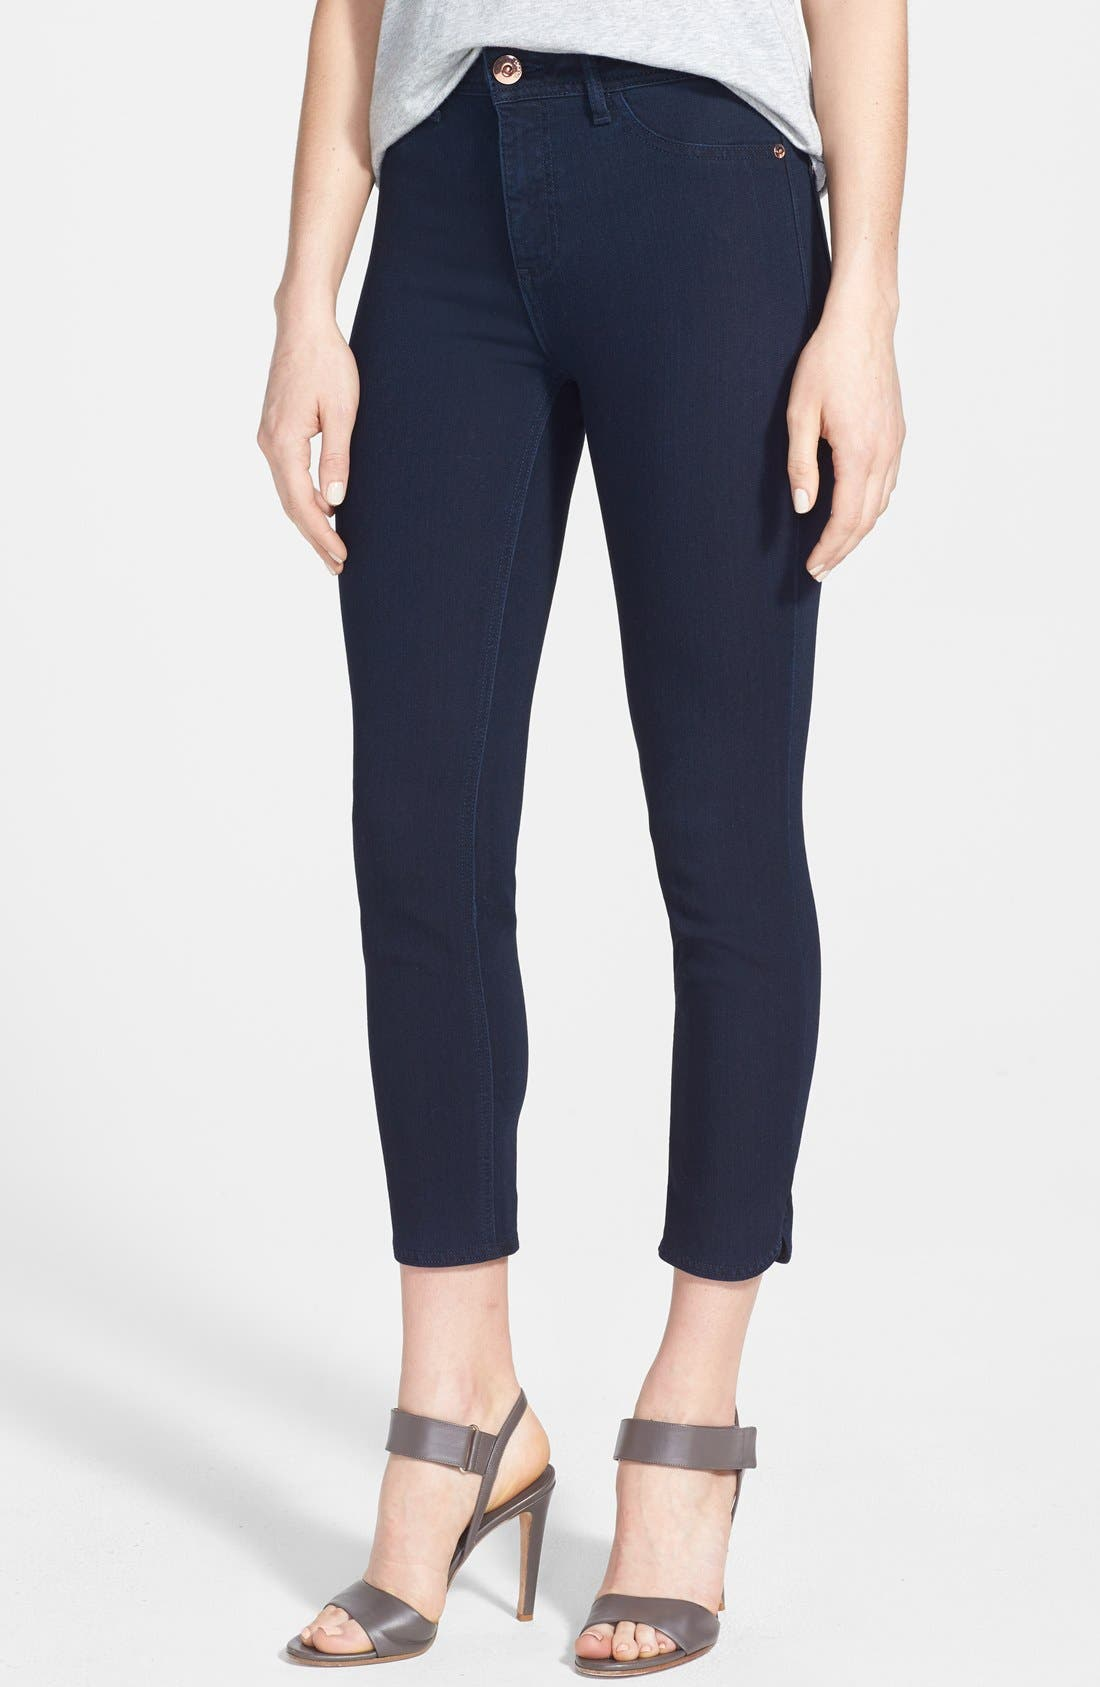 Alternate Image 1 Selected - DL1961 'Bardot High Rise' Crop Jeans (Flat Iron)